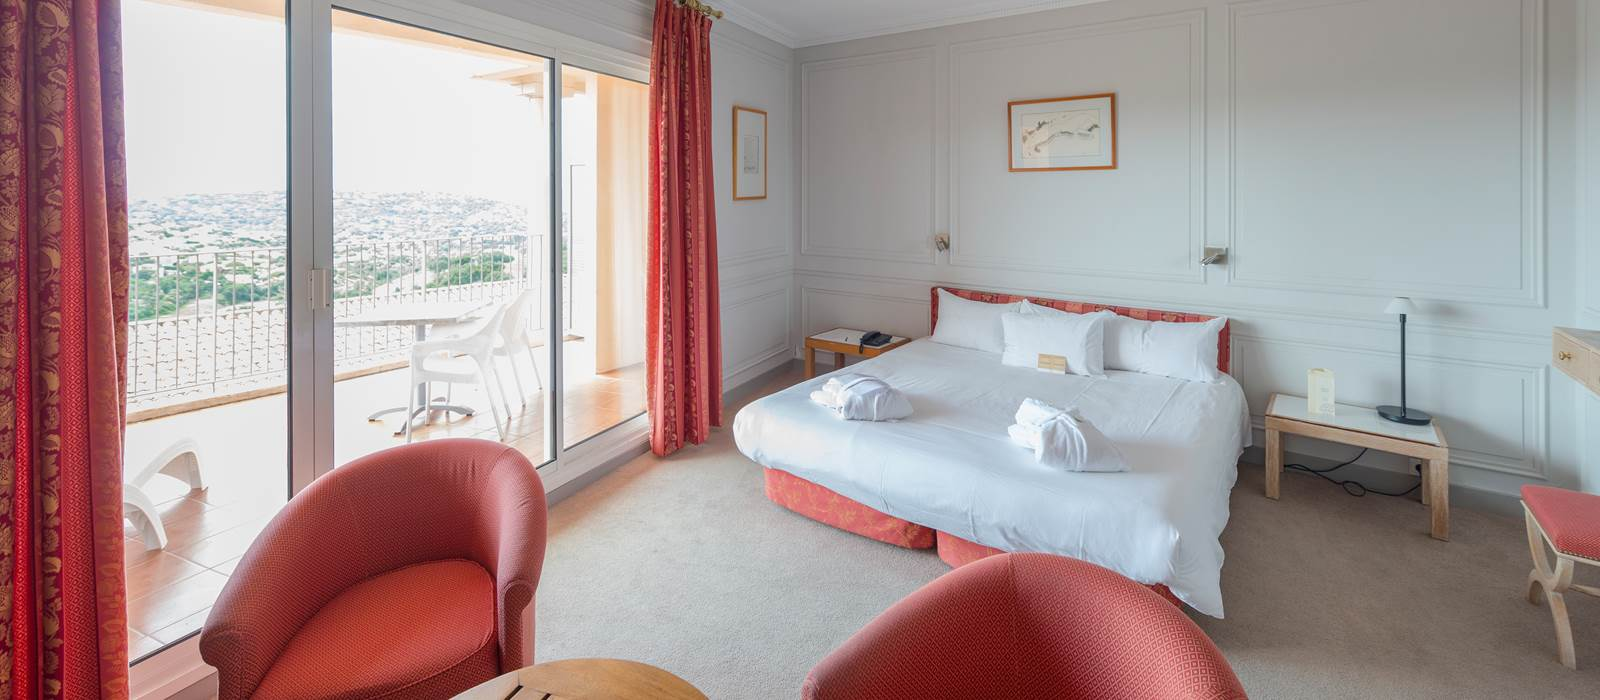 Terrace Suites Hotel Amarante Golf Plaza Sainte-Maxime